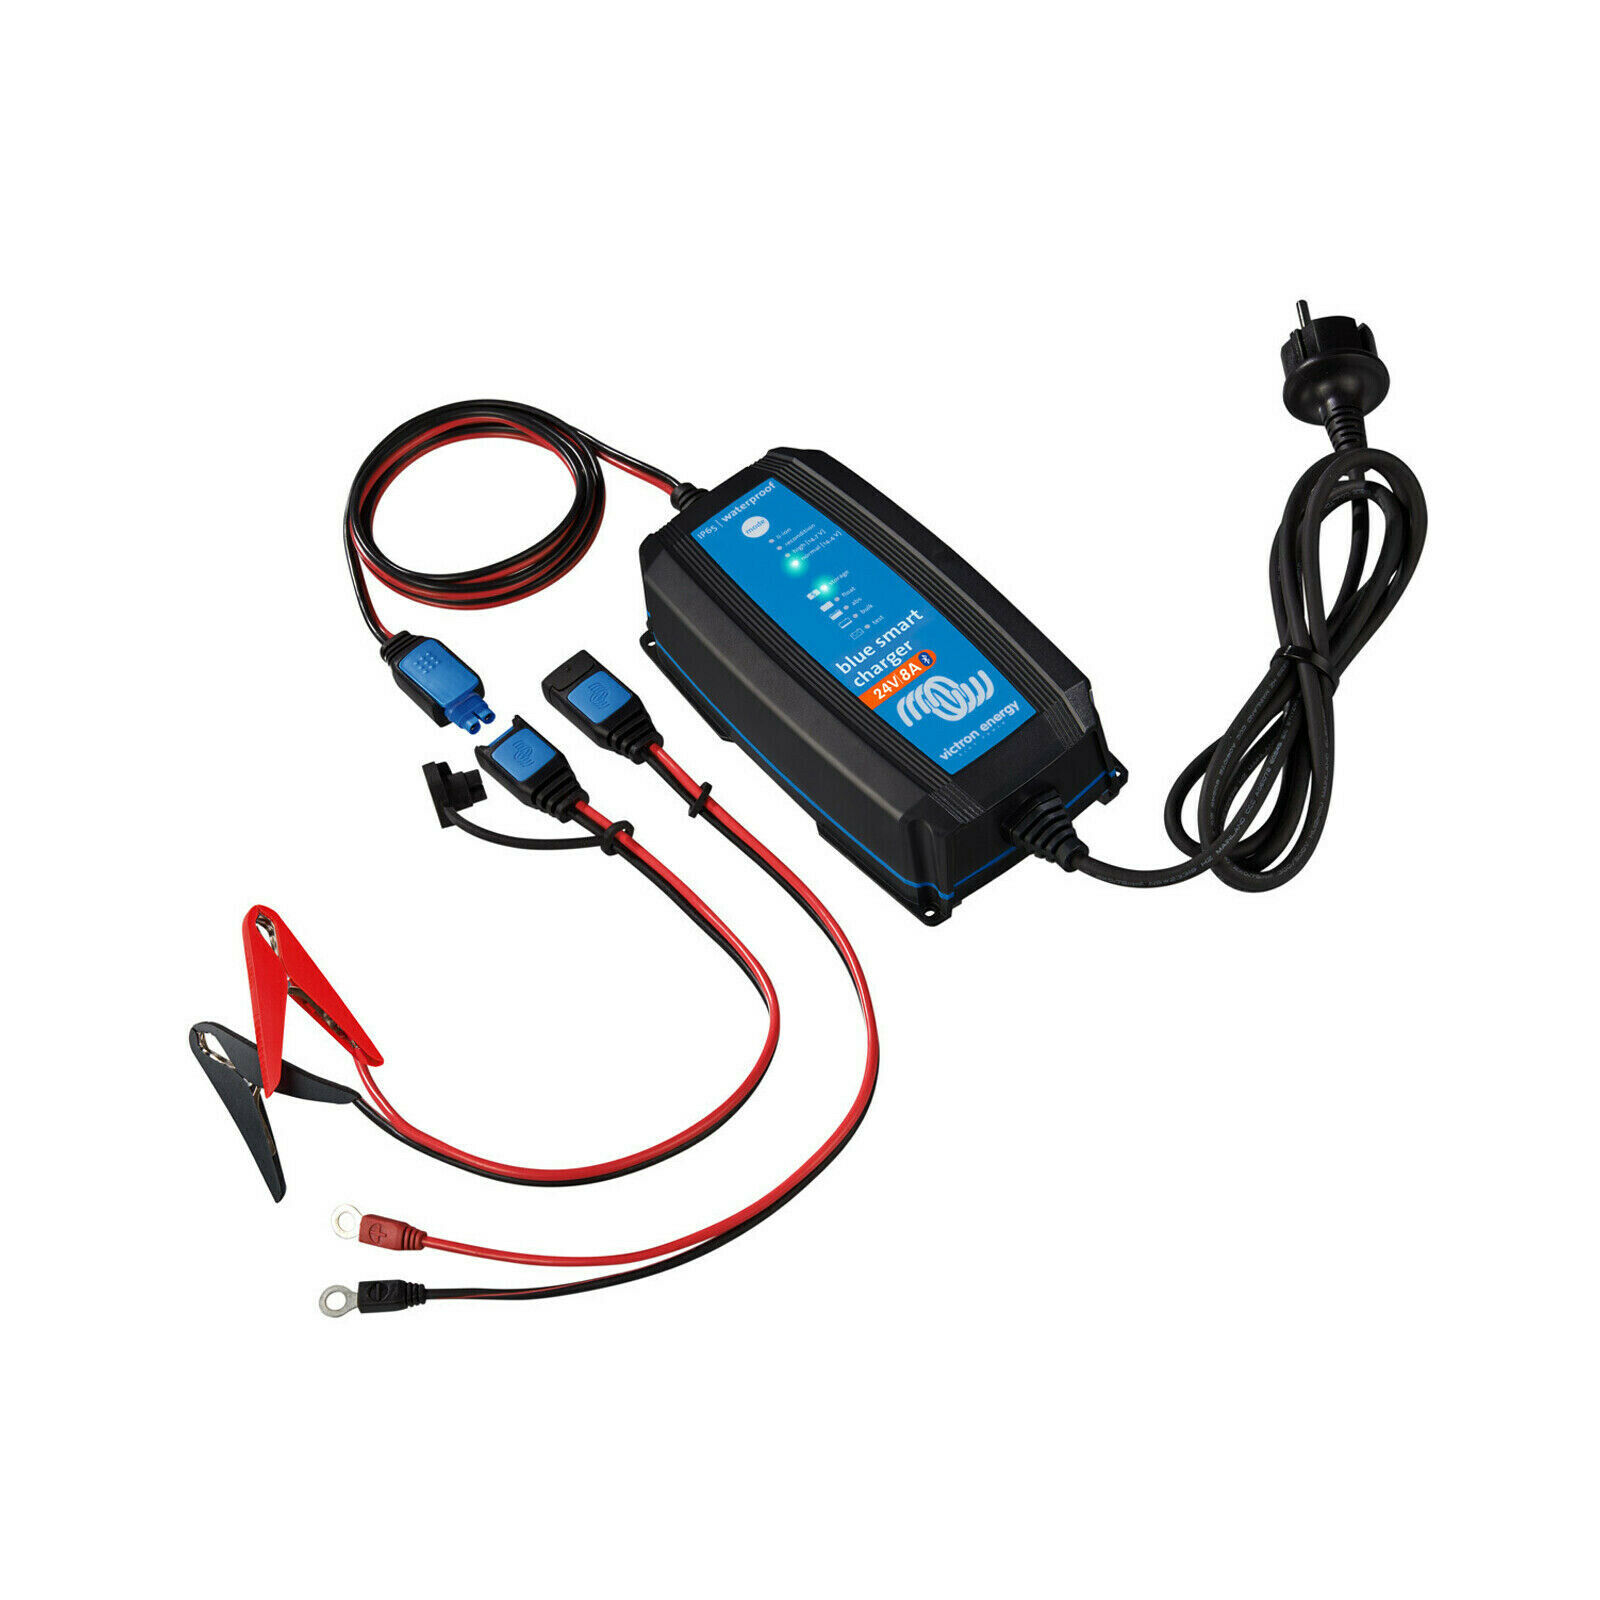 Victron BlueSmart IP65 Battery Charger 24V/8A w/ DC Connector